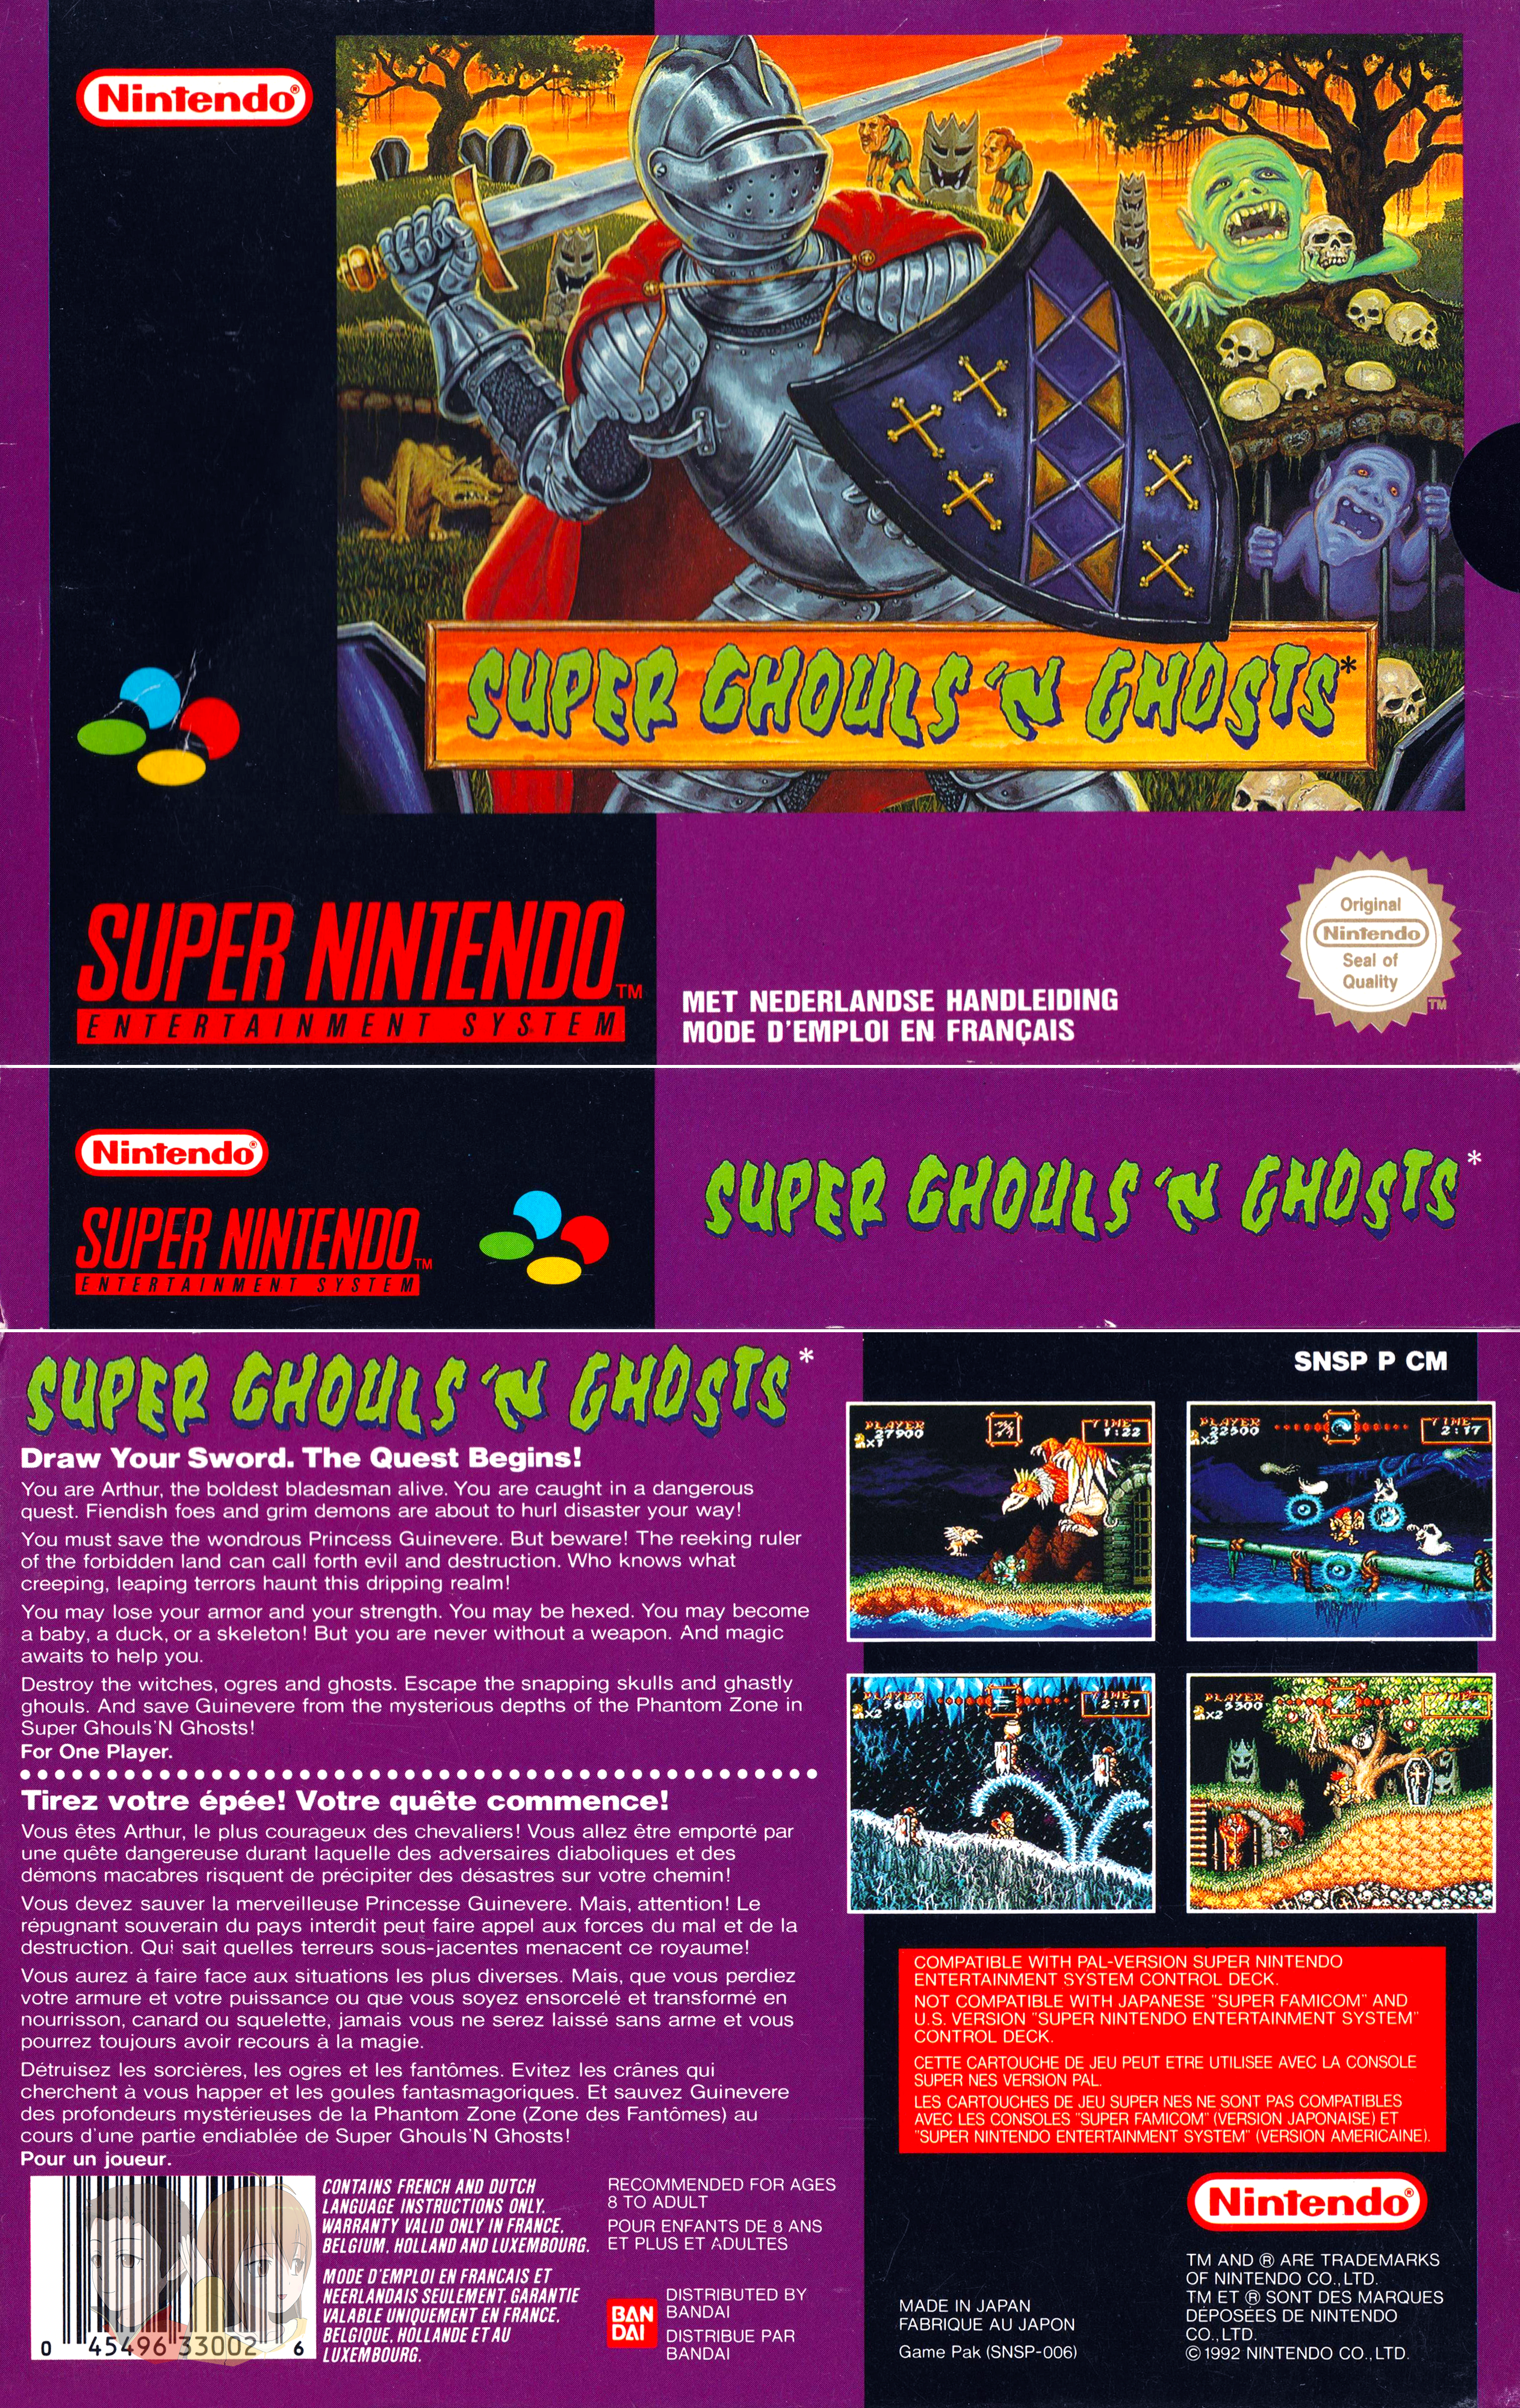 SNES--Jaquette---Super-ghouls-n-ghosts--